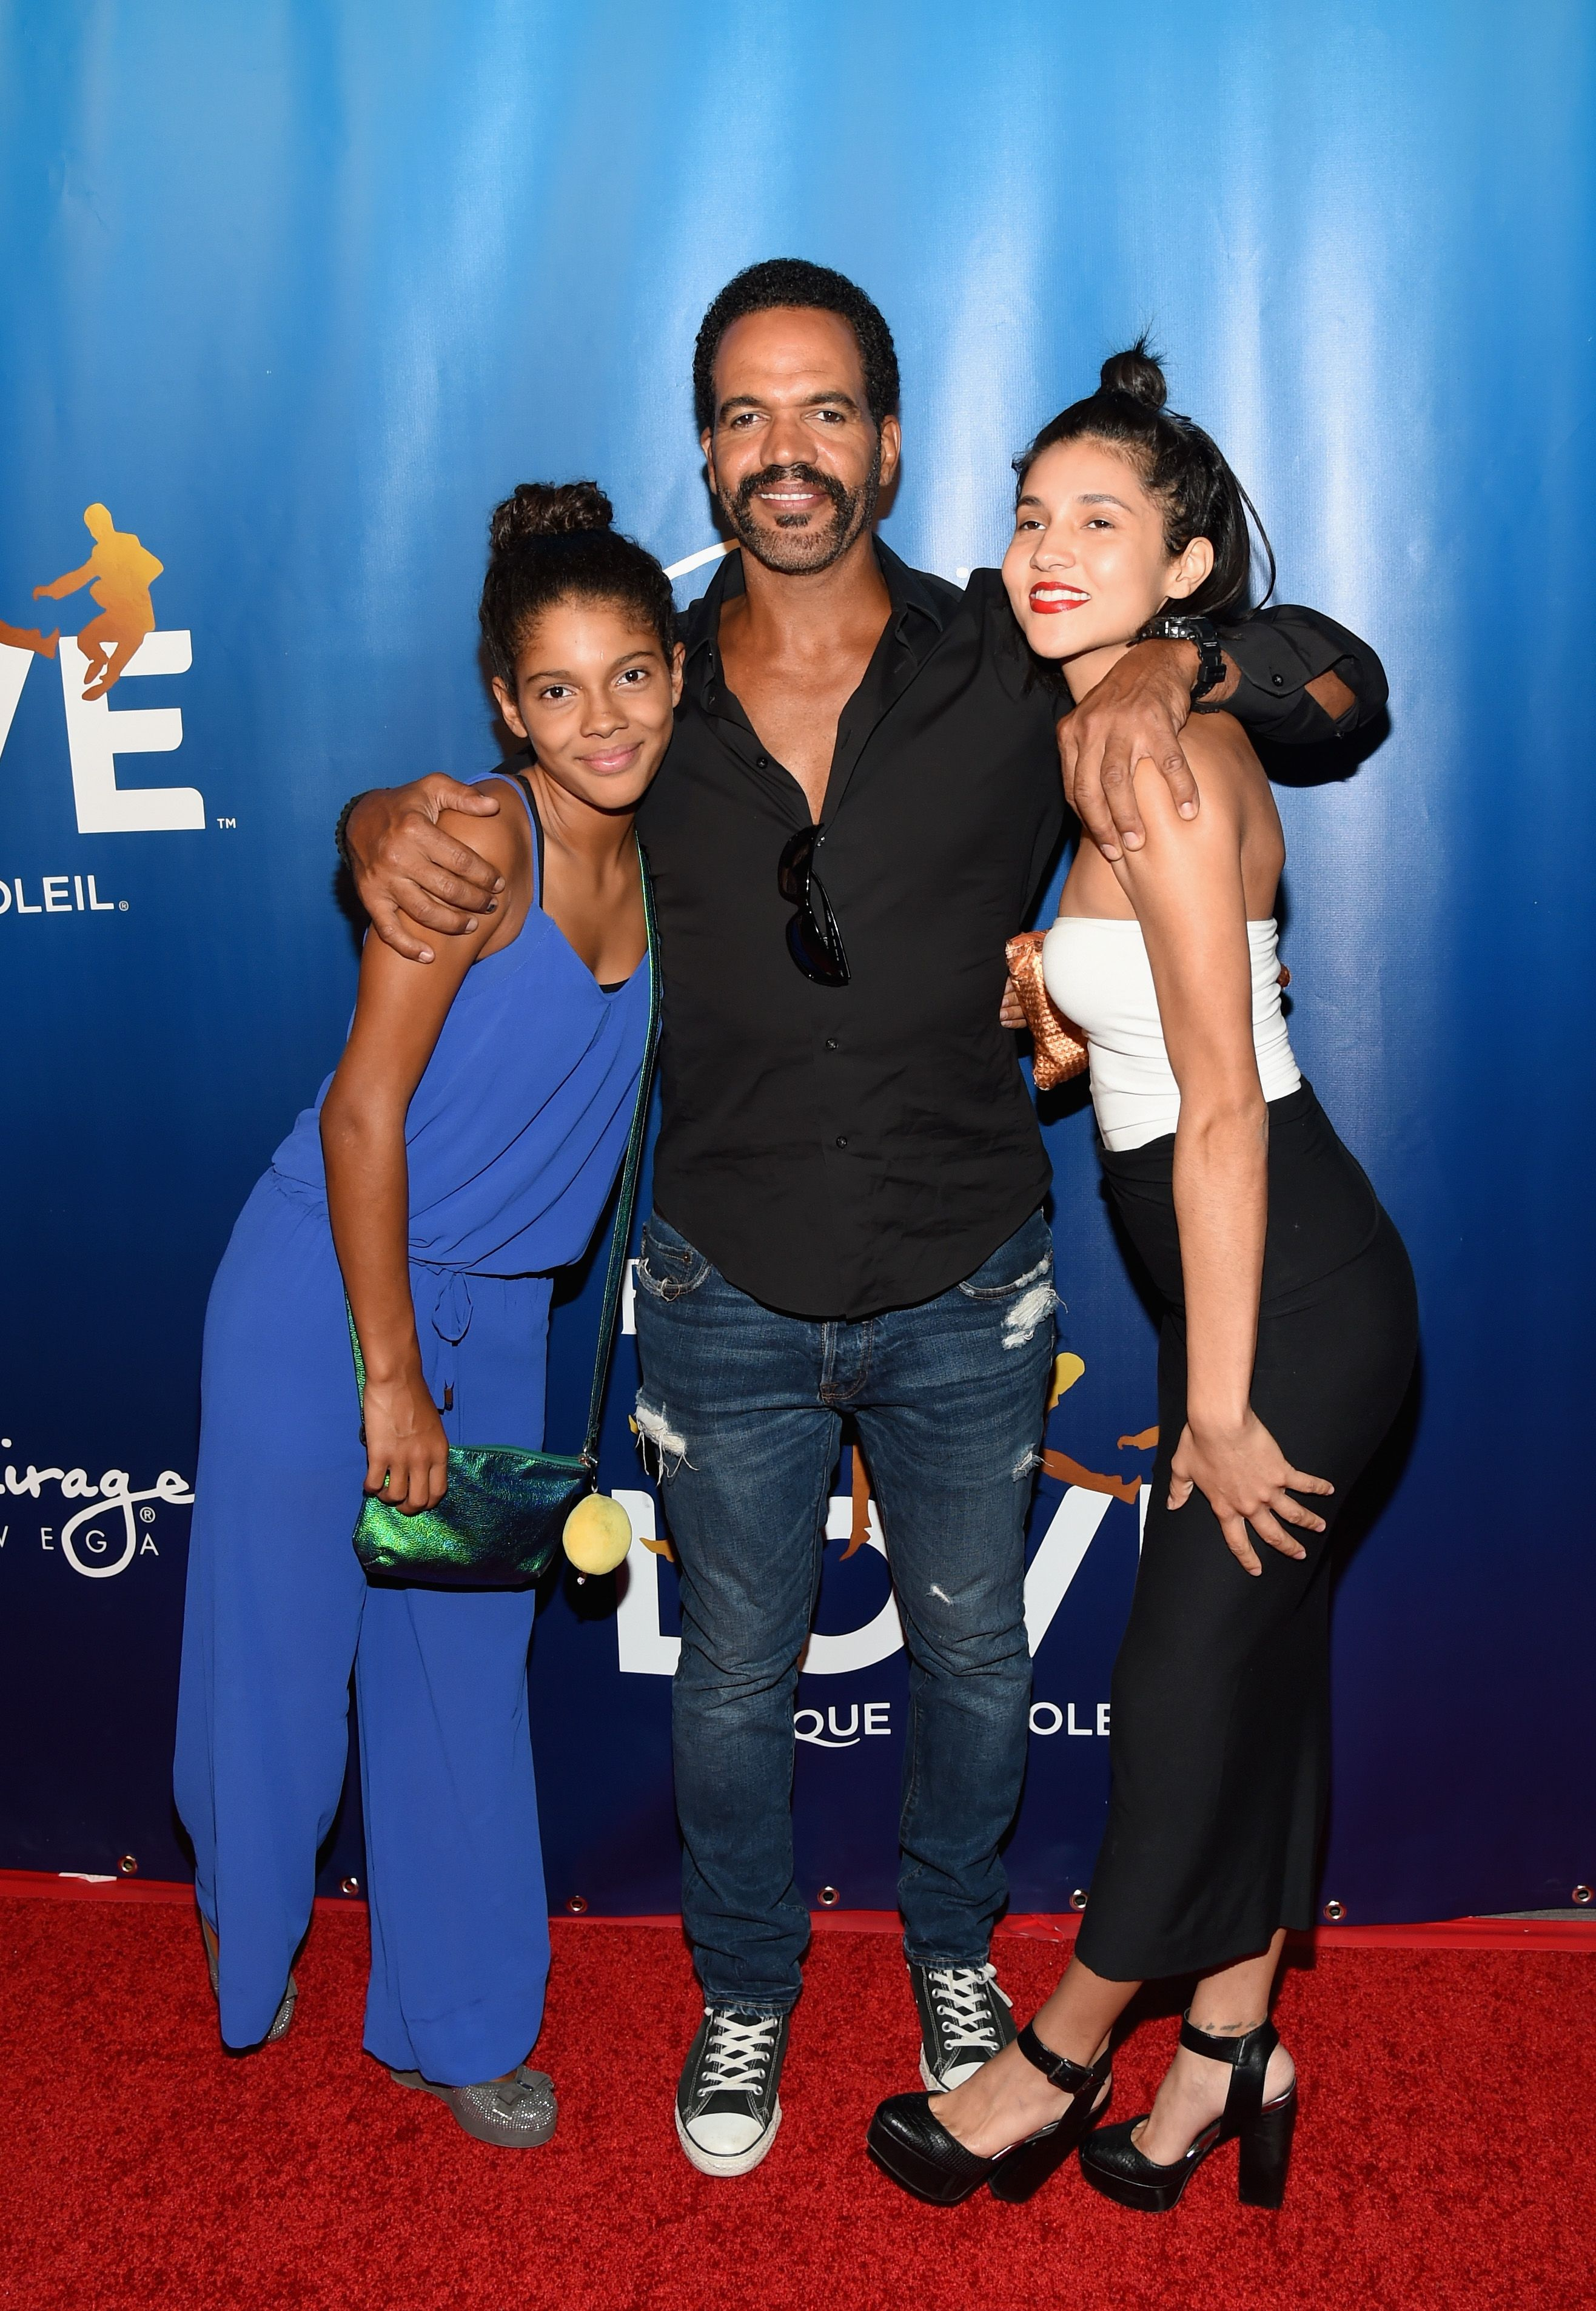 """Lola, Kristoff, and Paris St. John at the 10th-anniversary celebration of """"The Beatles LOVE by Cirque du Soleil"""" on July 14, 2016, in Las Vegas, Nevada 